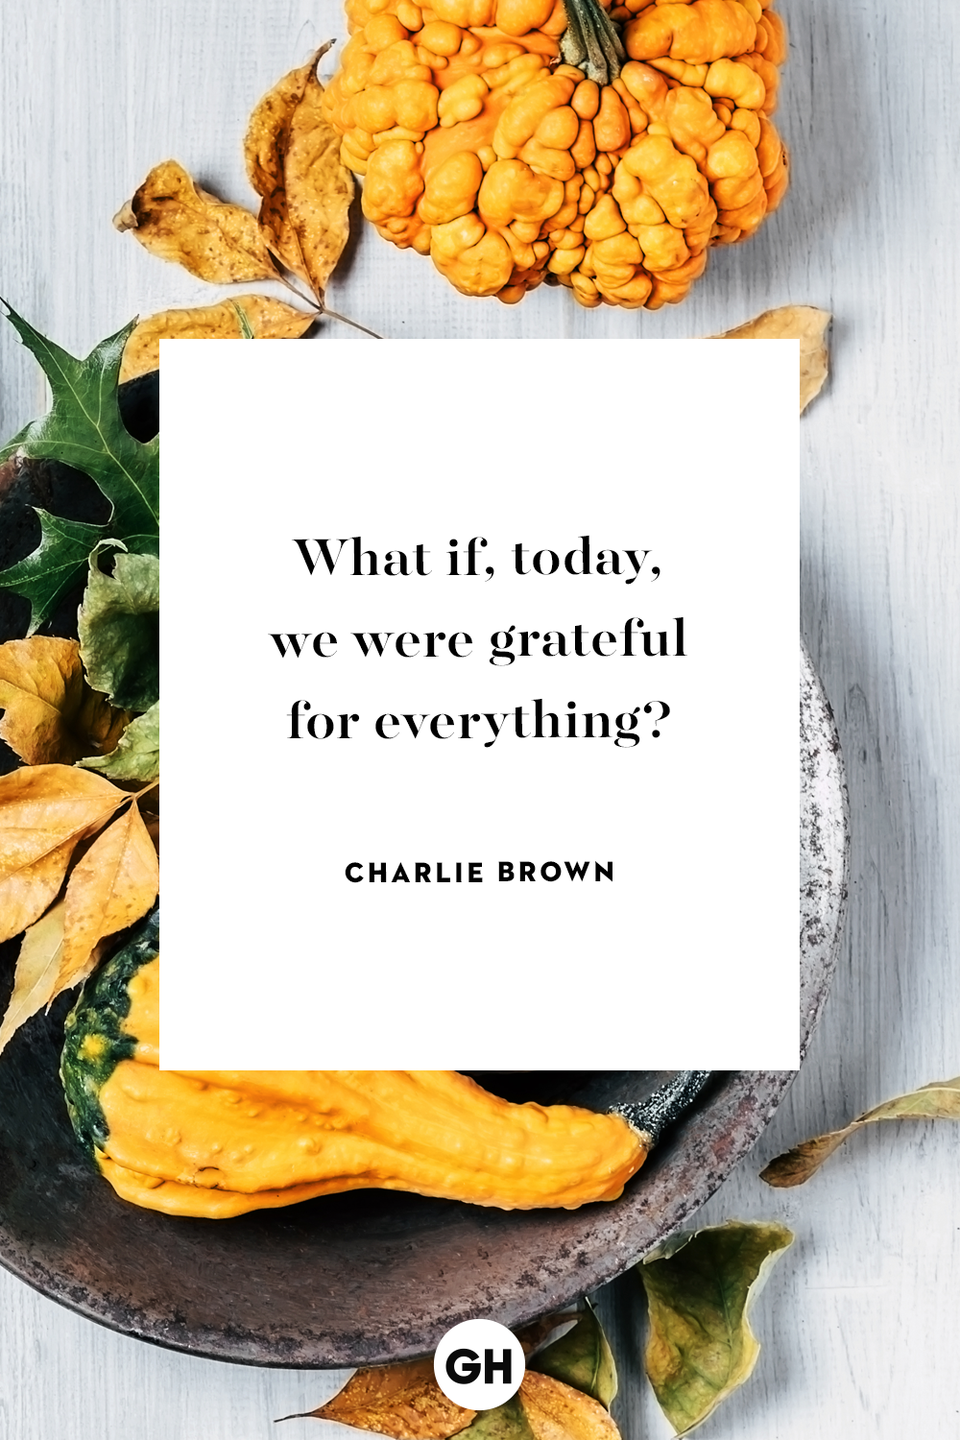 <p>What if, today, we were grateful for everything?</p>